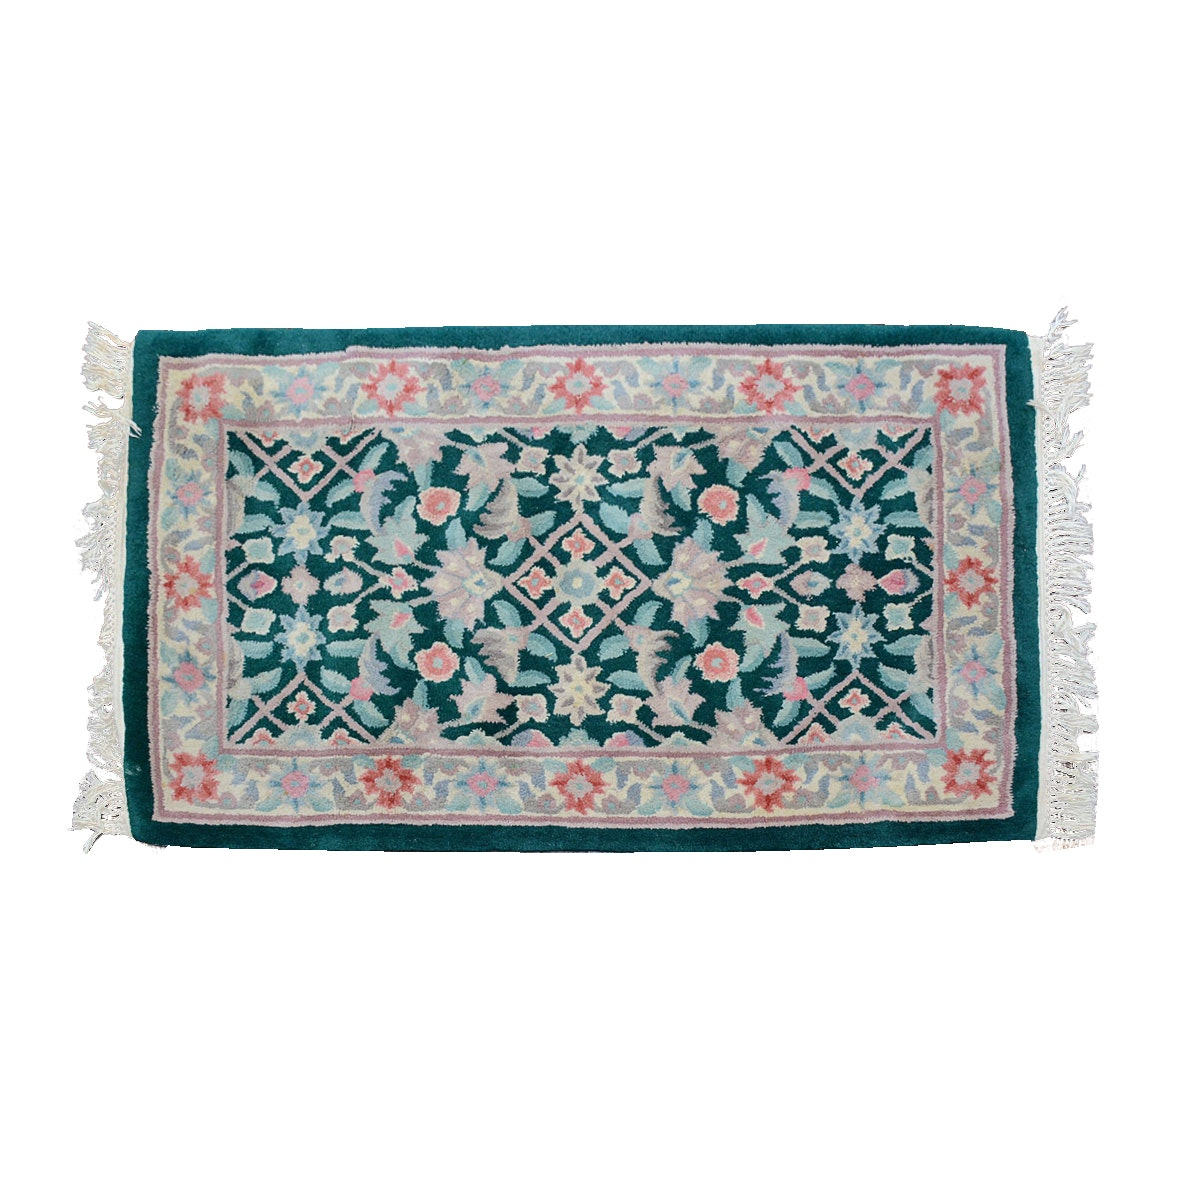 Machine Made Accent Rug with Floral Motif